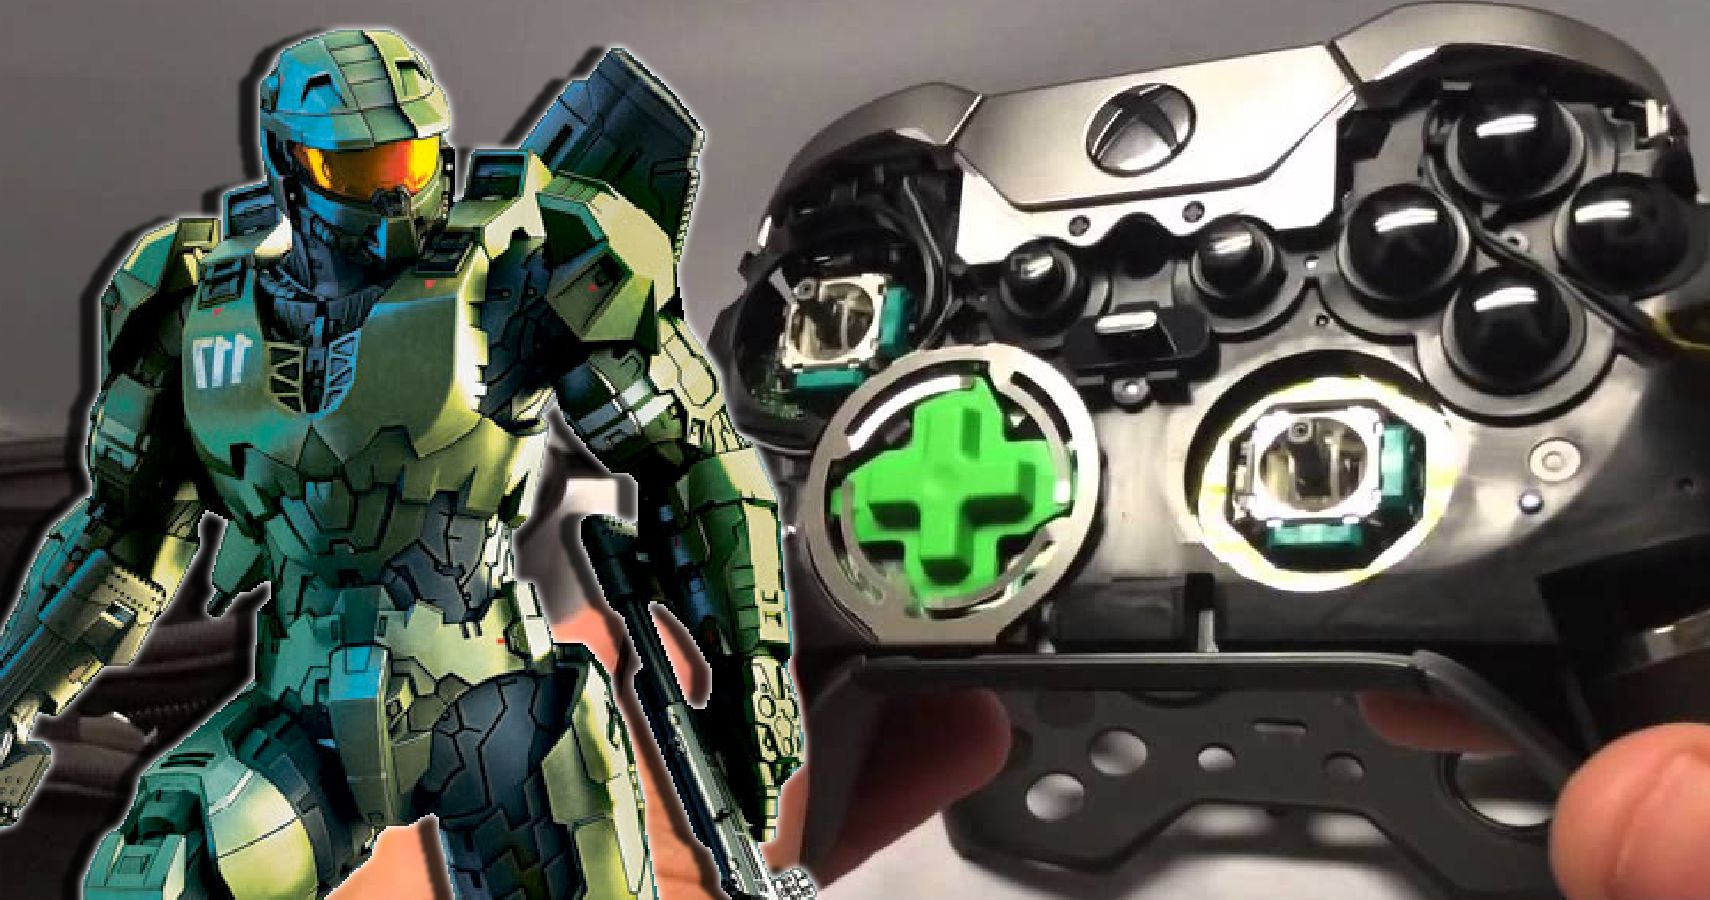 30 Things Only Super Fans Knew The Xbox One Could Do | TheGamer